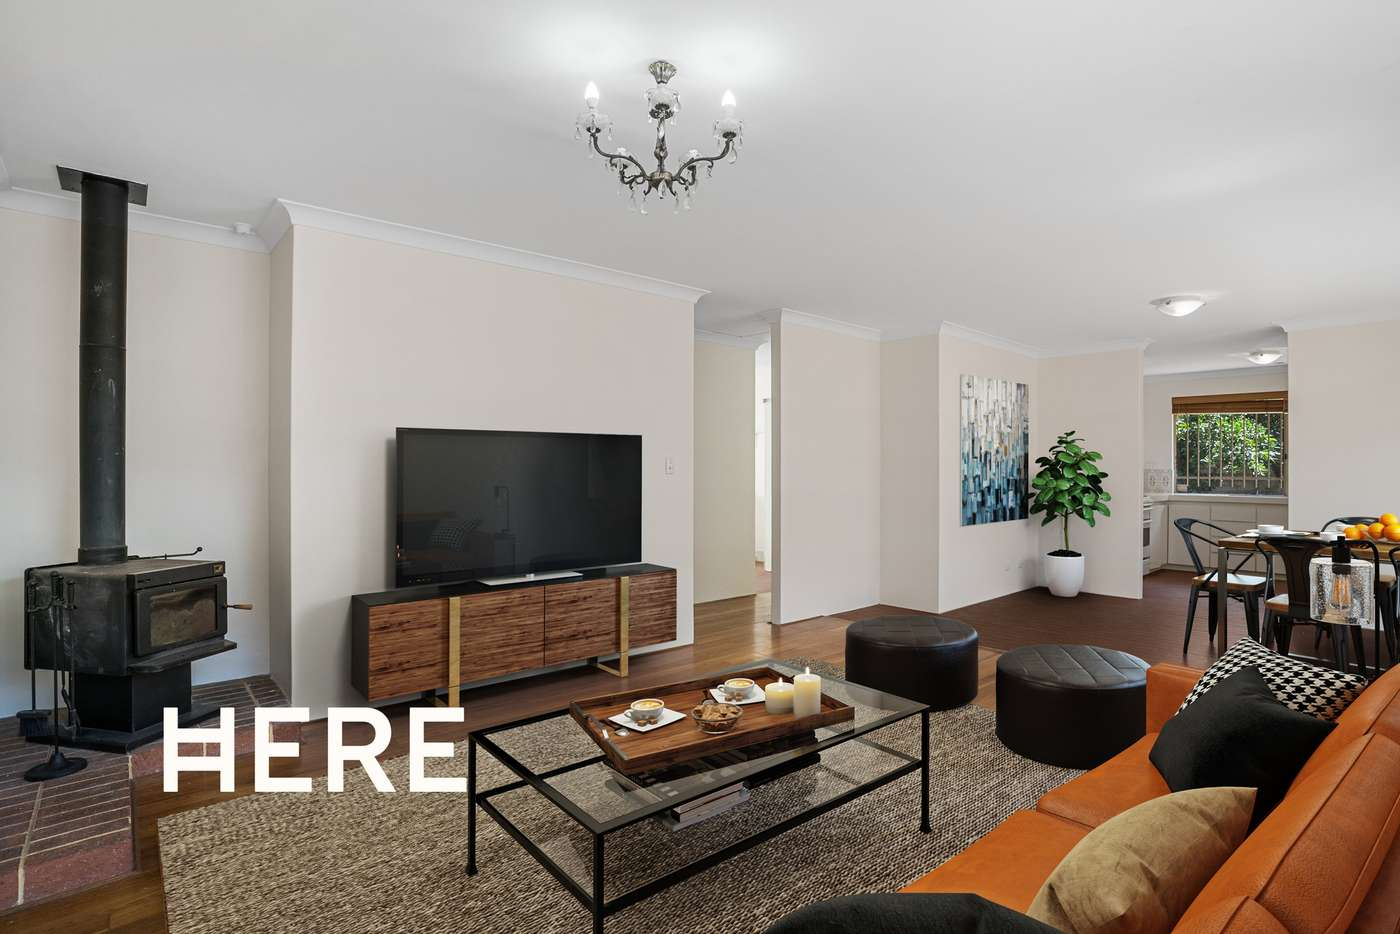 Main view of Homely house listing, 194 York Street, Subiaco WA 6008